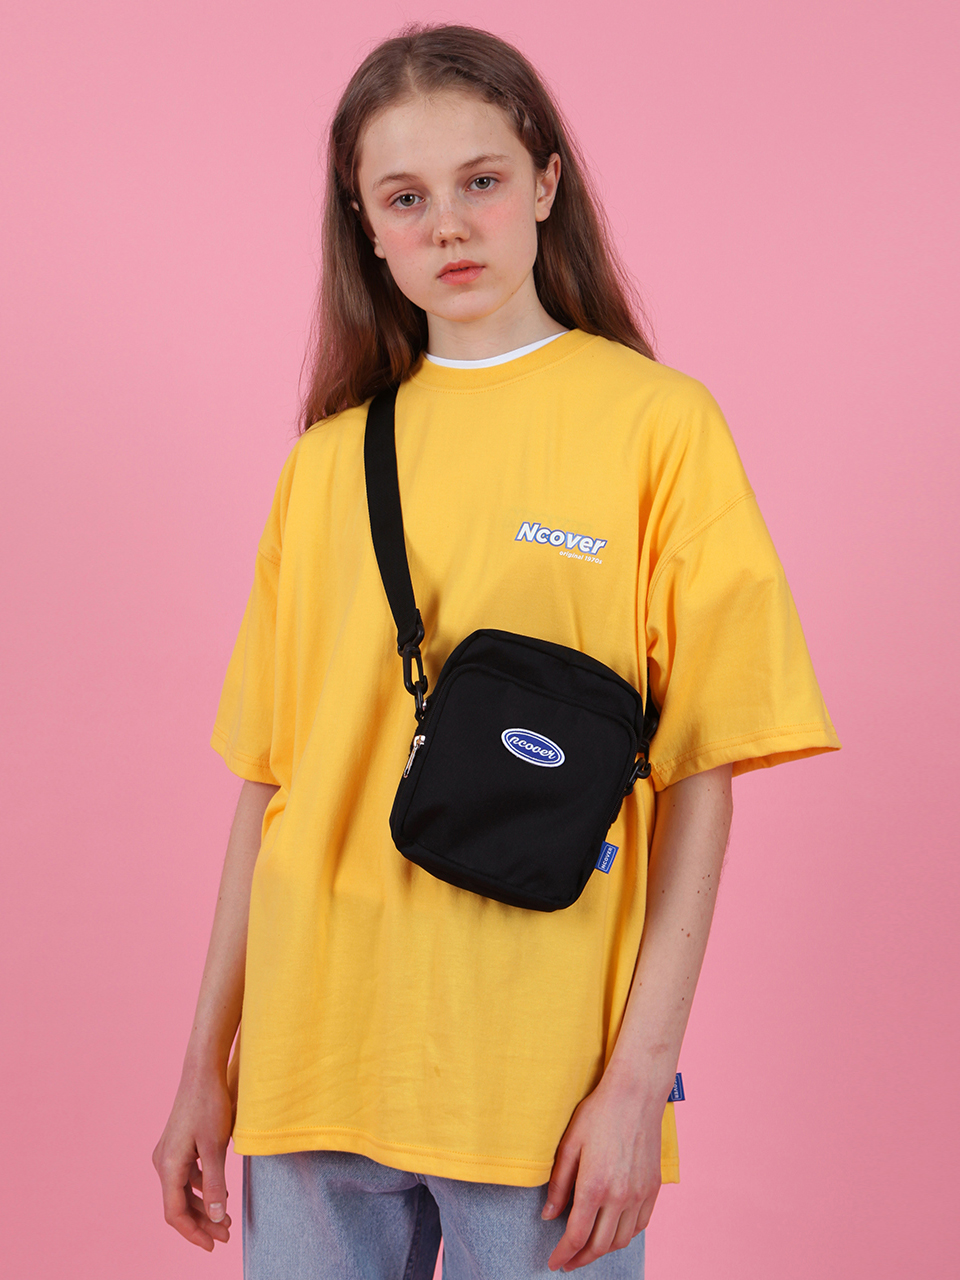 Ncover signature logo tshirt-yellow